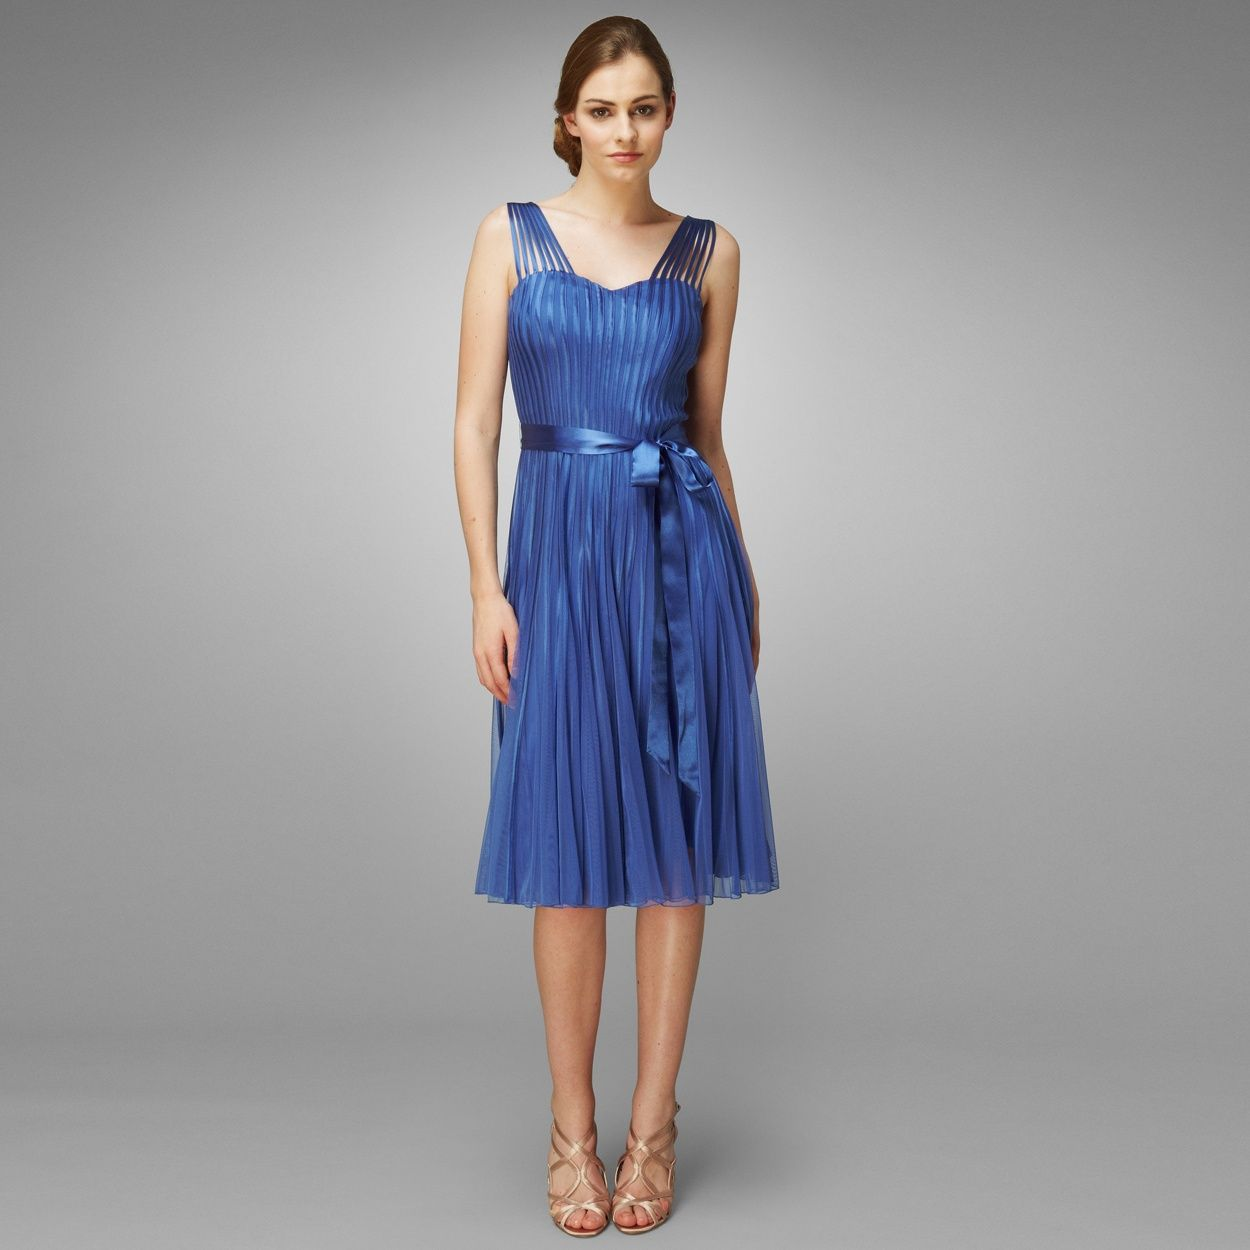 Gorgeous blue Bridesmaid dress designed by Phase 8 and available at Debenhams